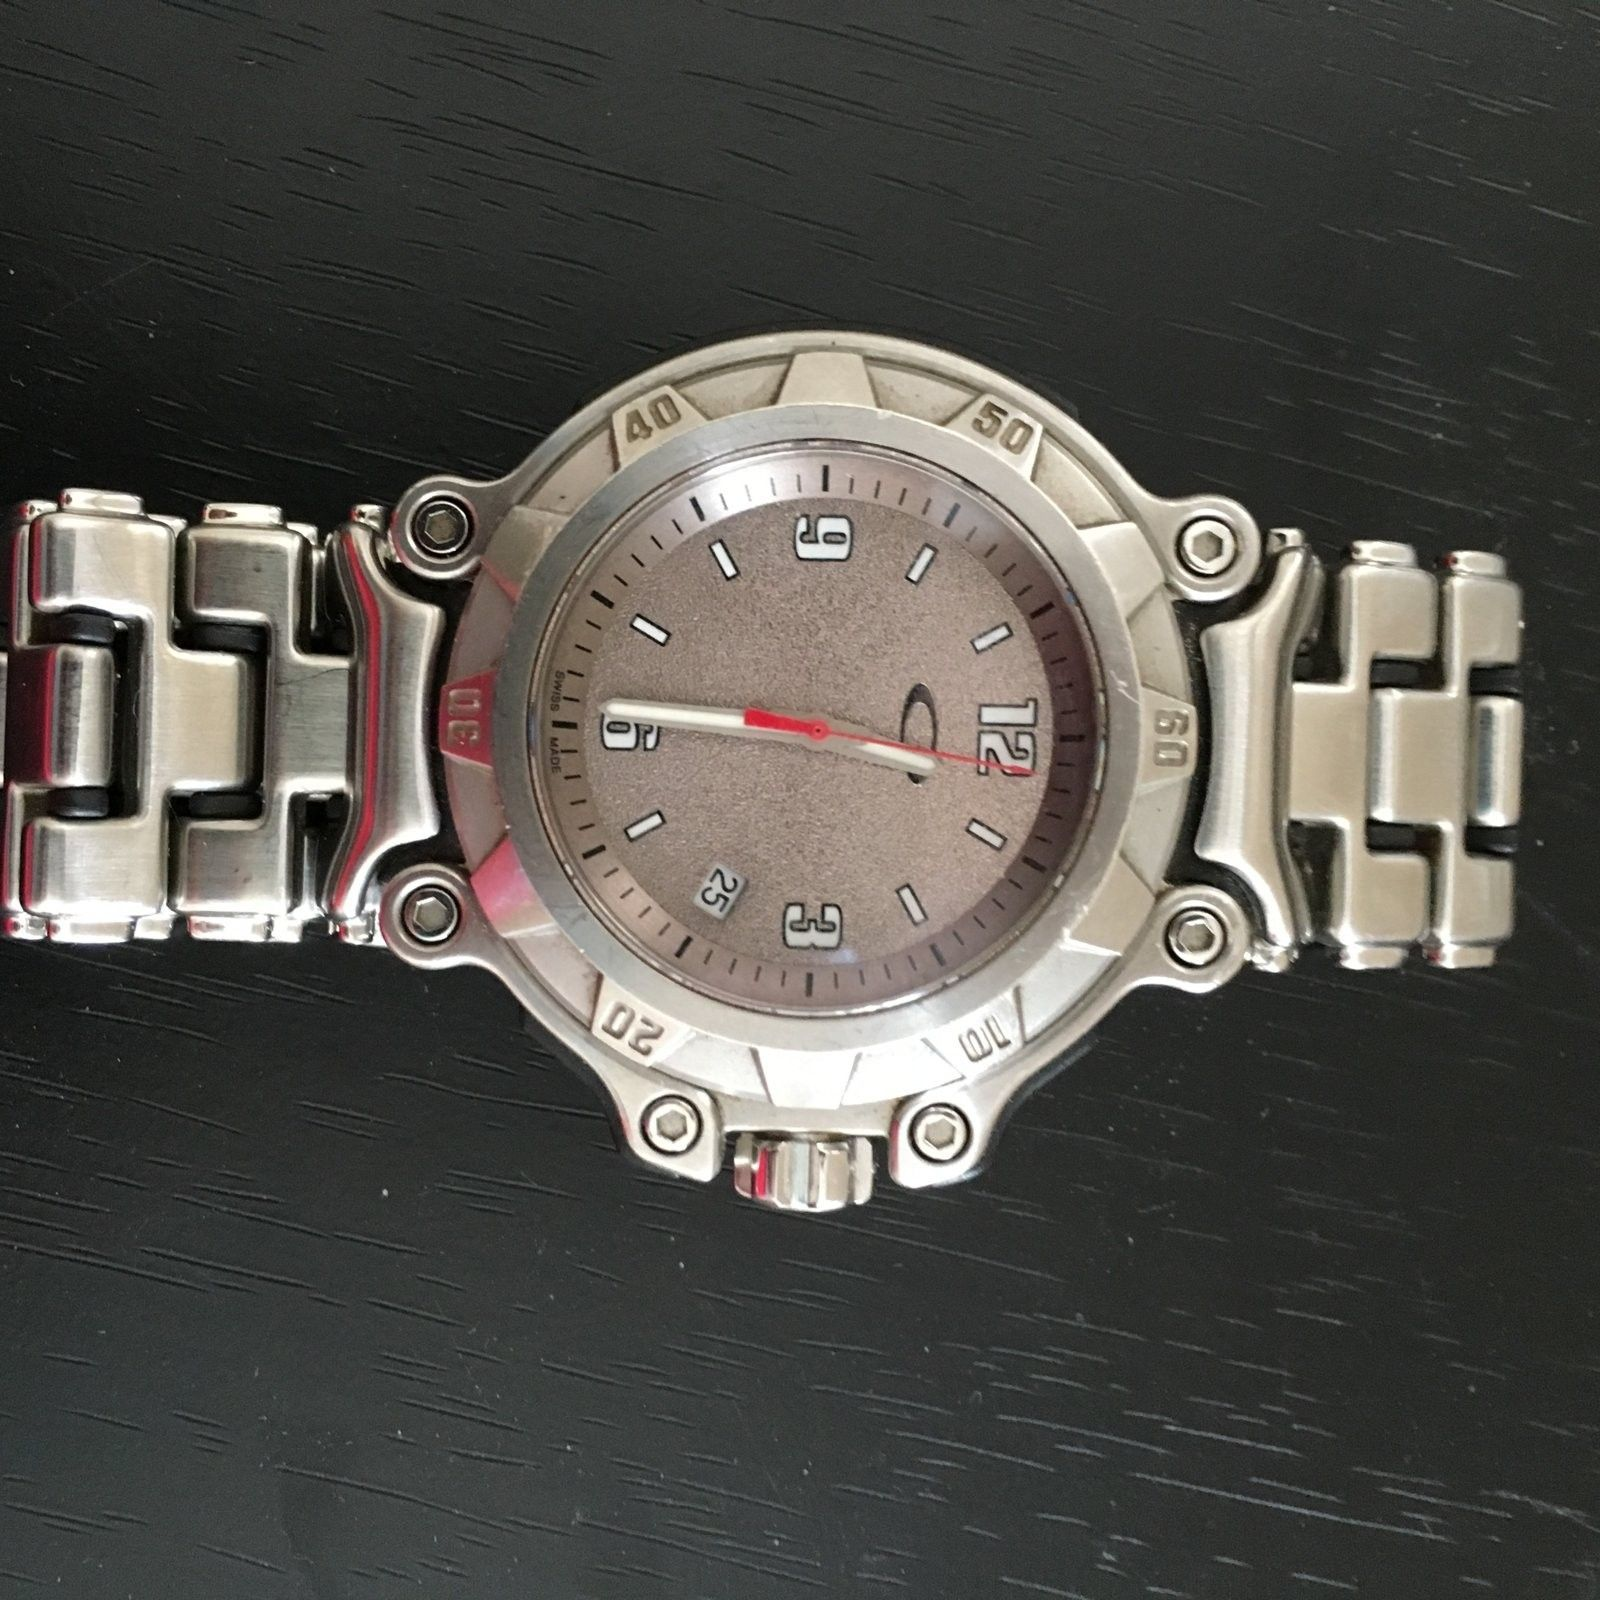 Hollow Point Black Watch Complete Sale or Trade or Both - IMG_1150.JPG